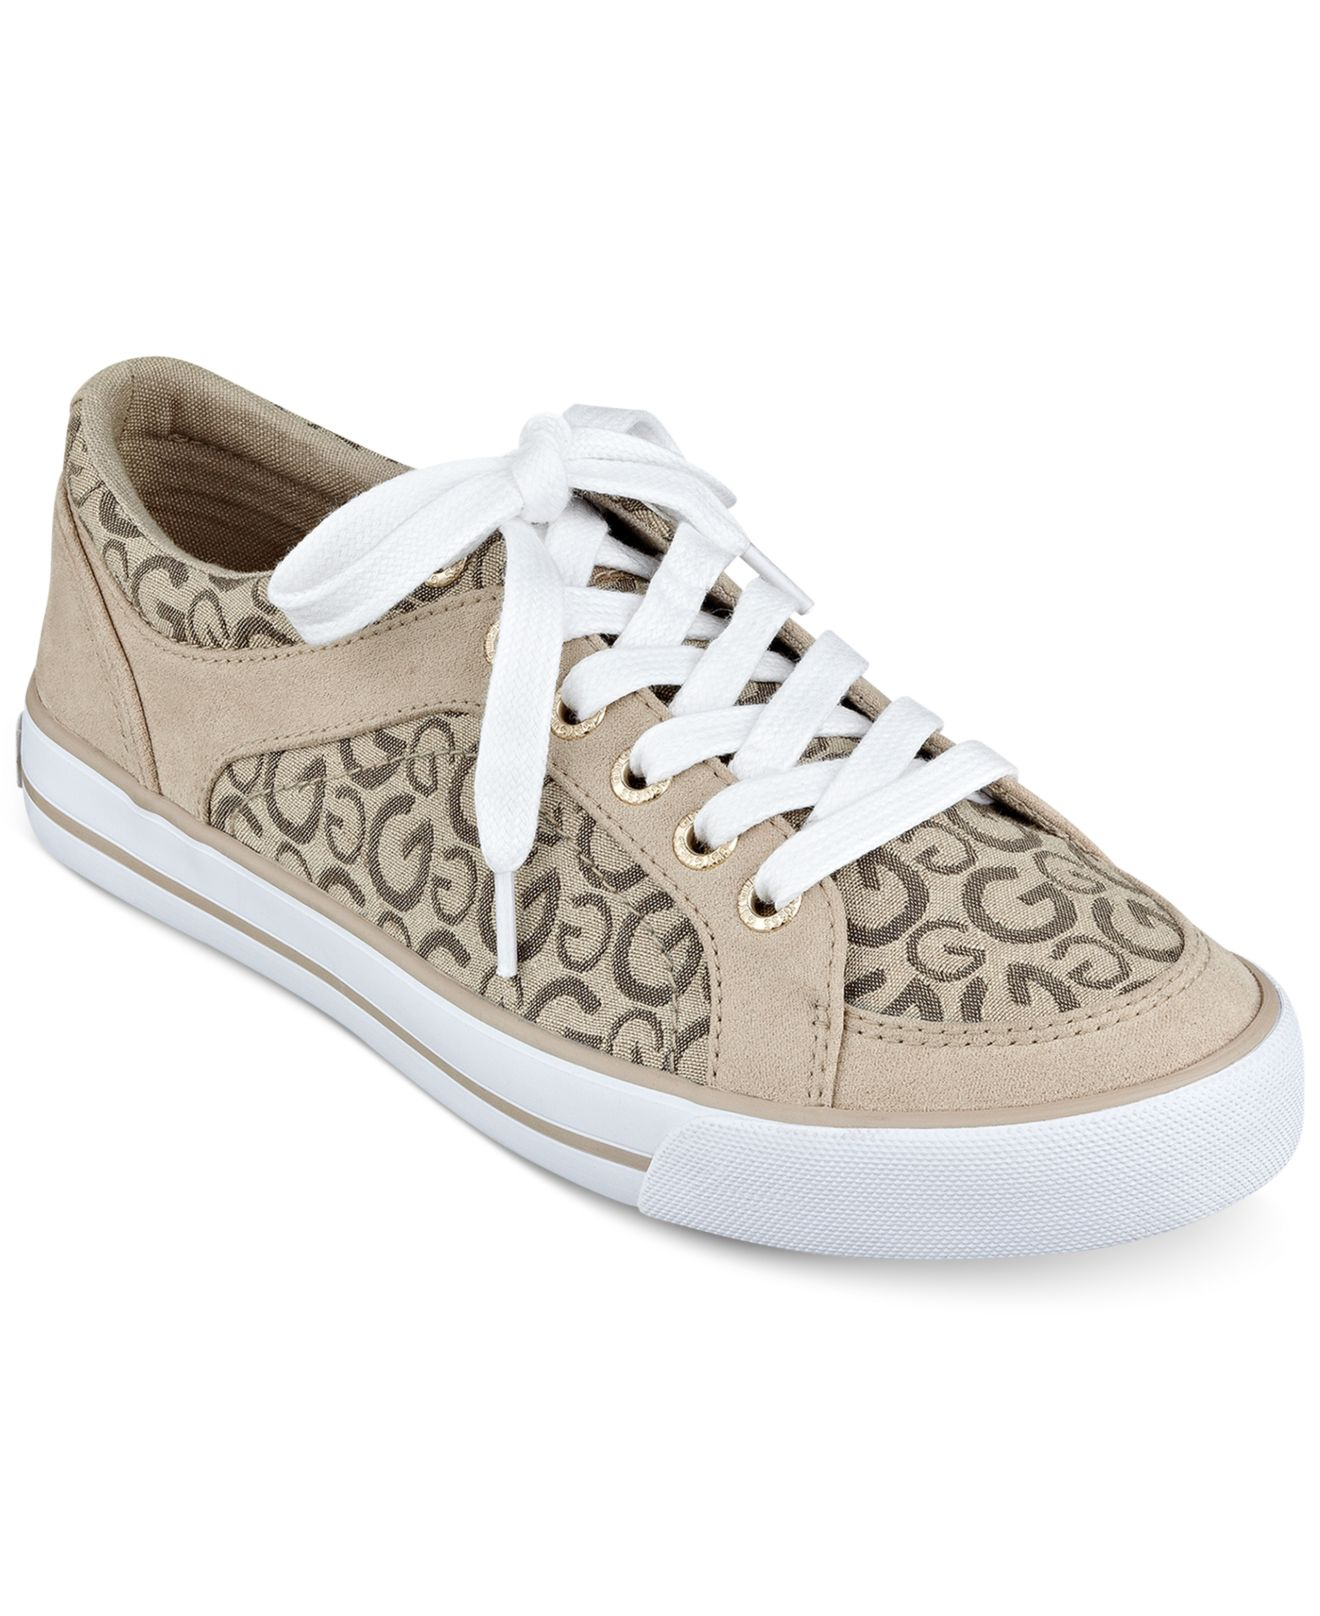 G By Guess Shoes White